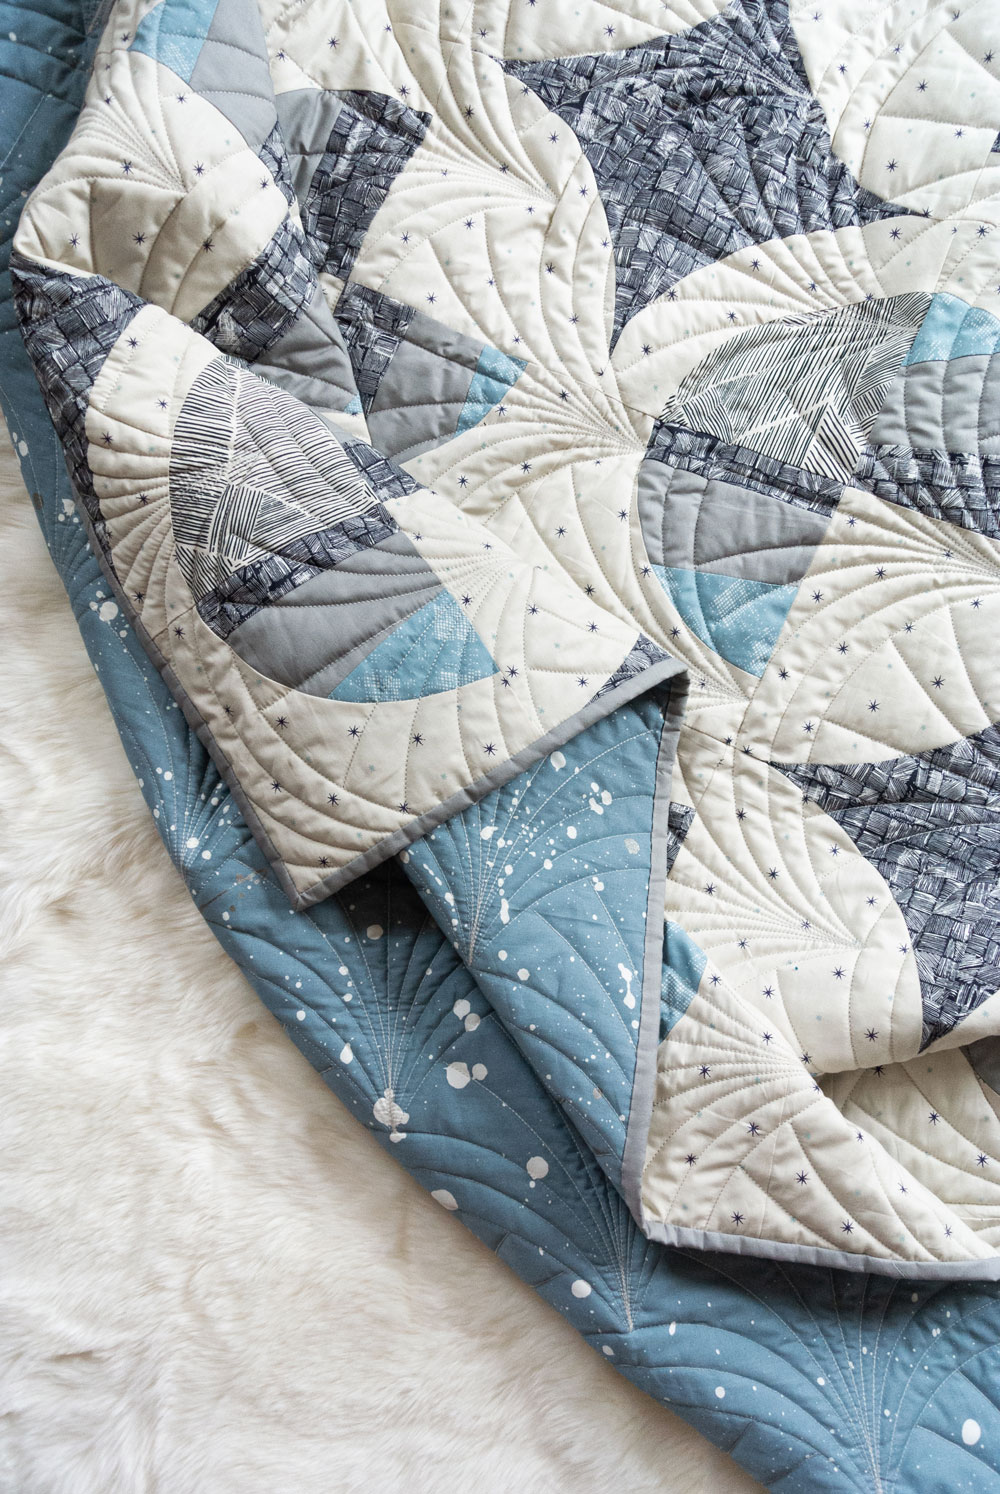 This Great Gatsby inspired Modern Fans quilt kit uses icy blues, grays and metallic silver fabric to bring elegance and pizzazz to a cozy quilt. suzyquilts.com #quiltpattern #quilt #modernquilt